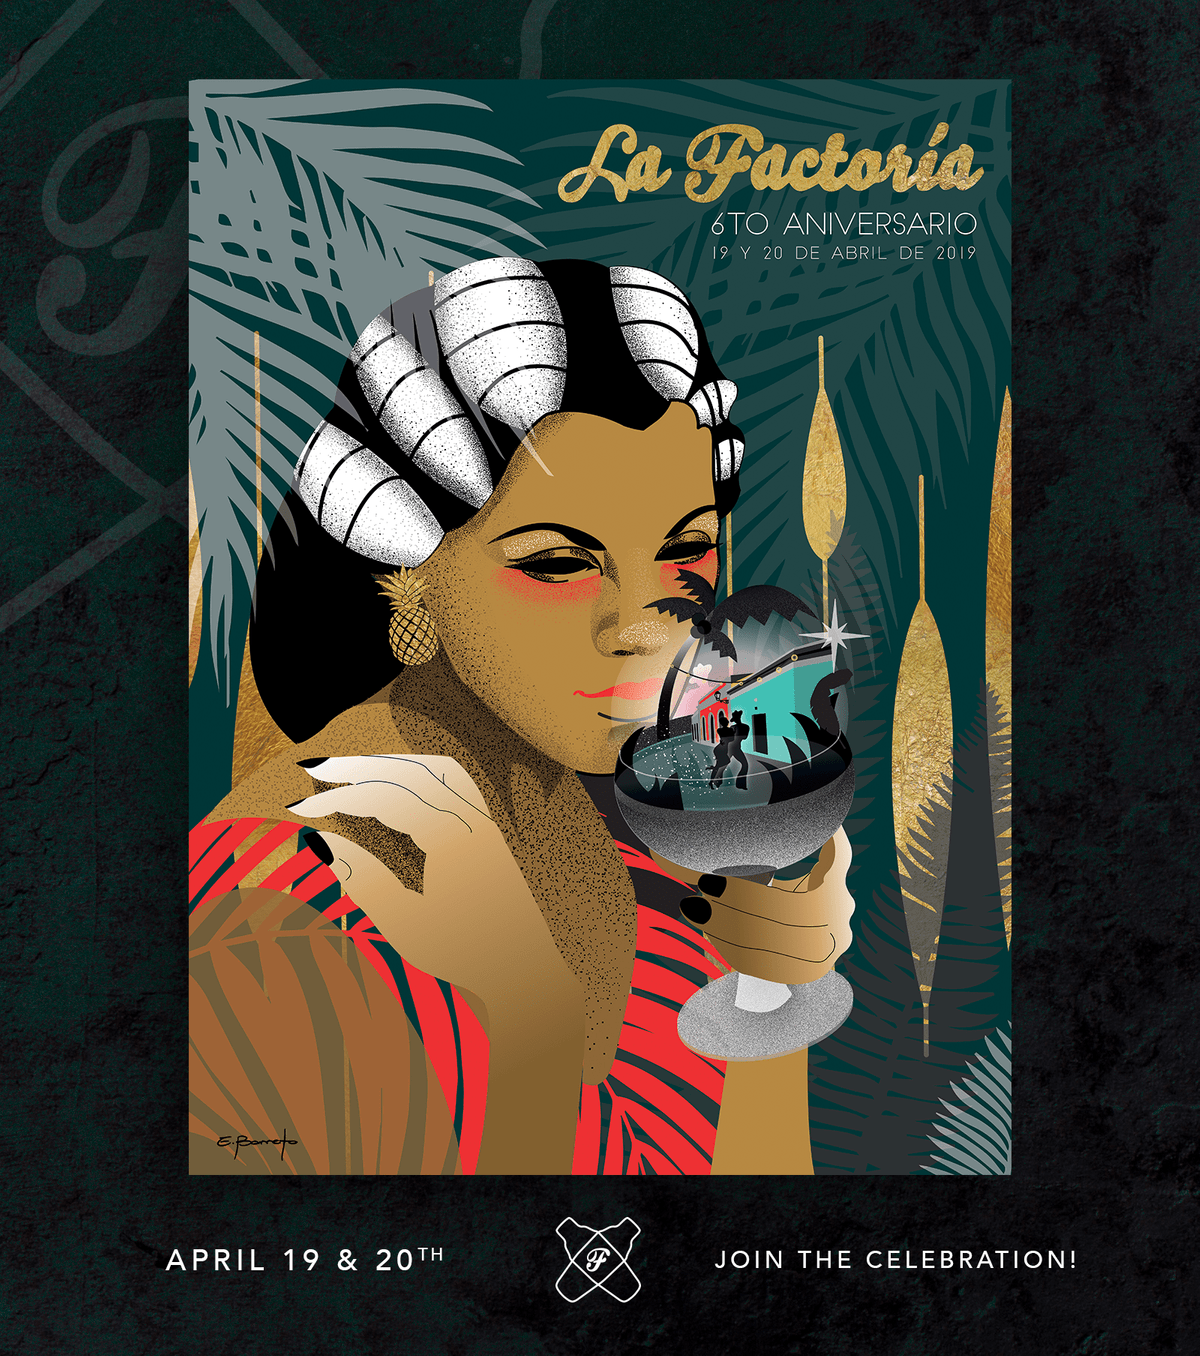 La Factoria's 6th anniversary commemorative poster from local artist Elizabeth Barreto